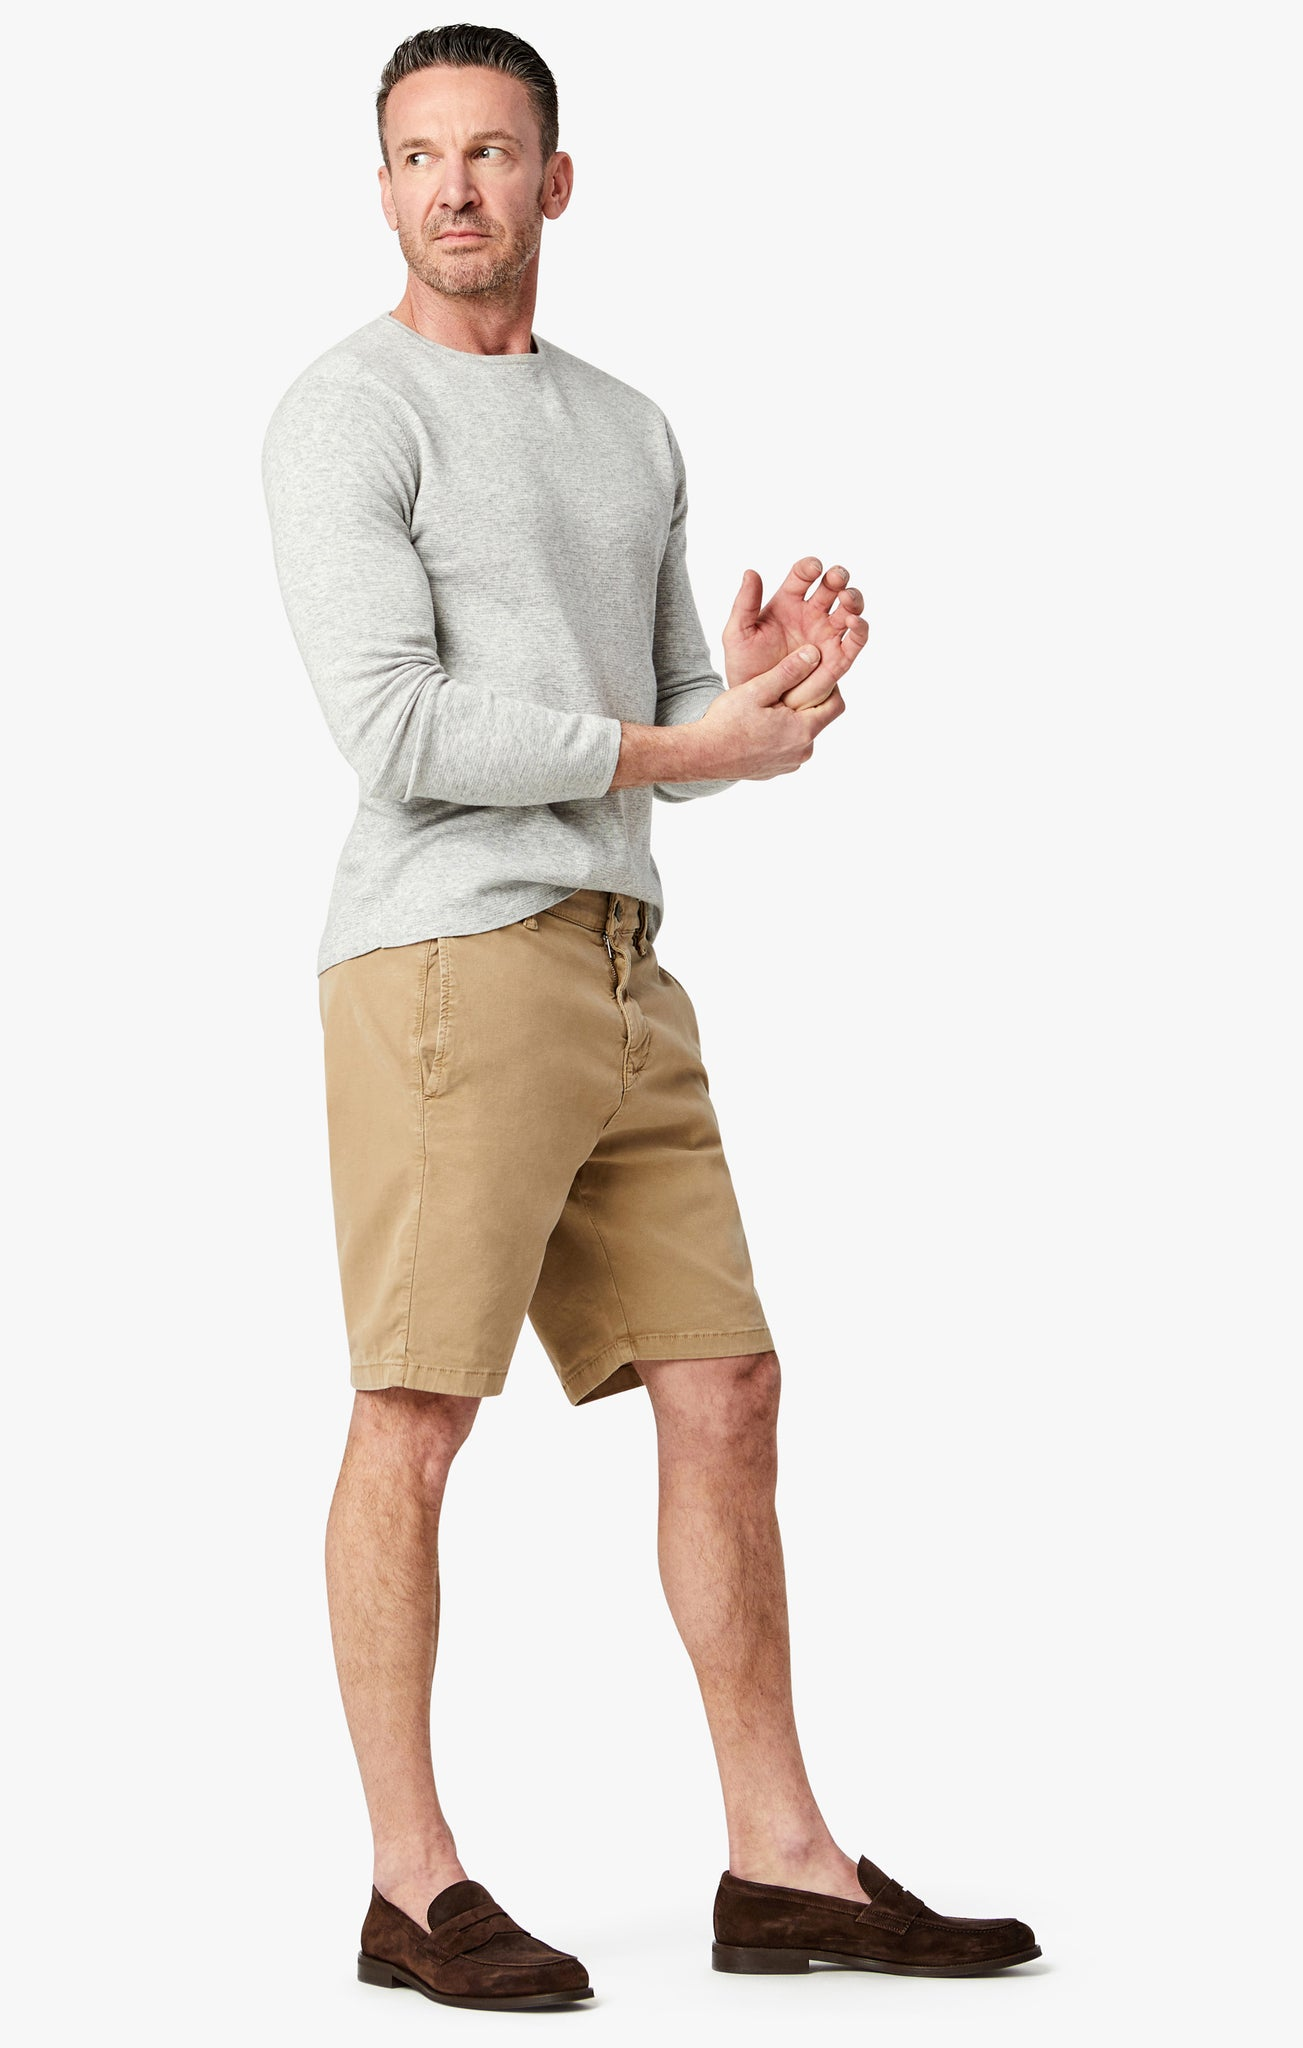 Nevada Shorts in Khaki Soft Touch